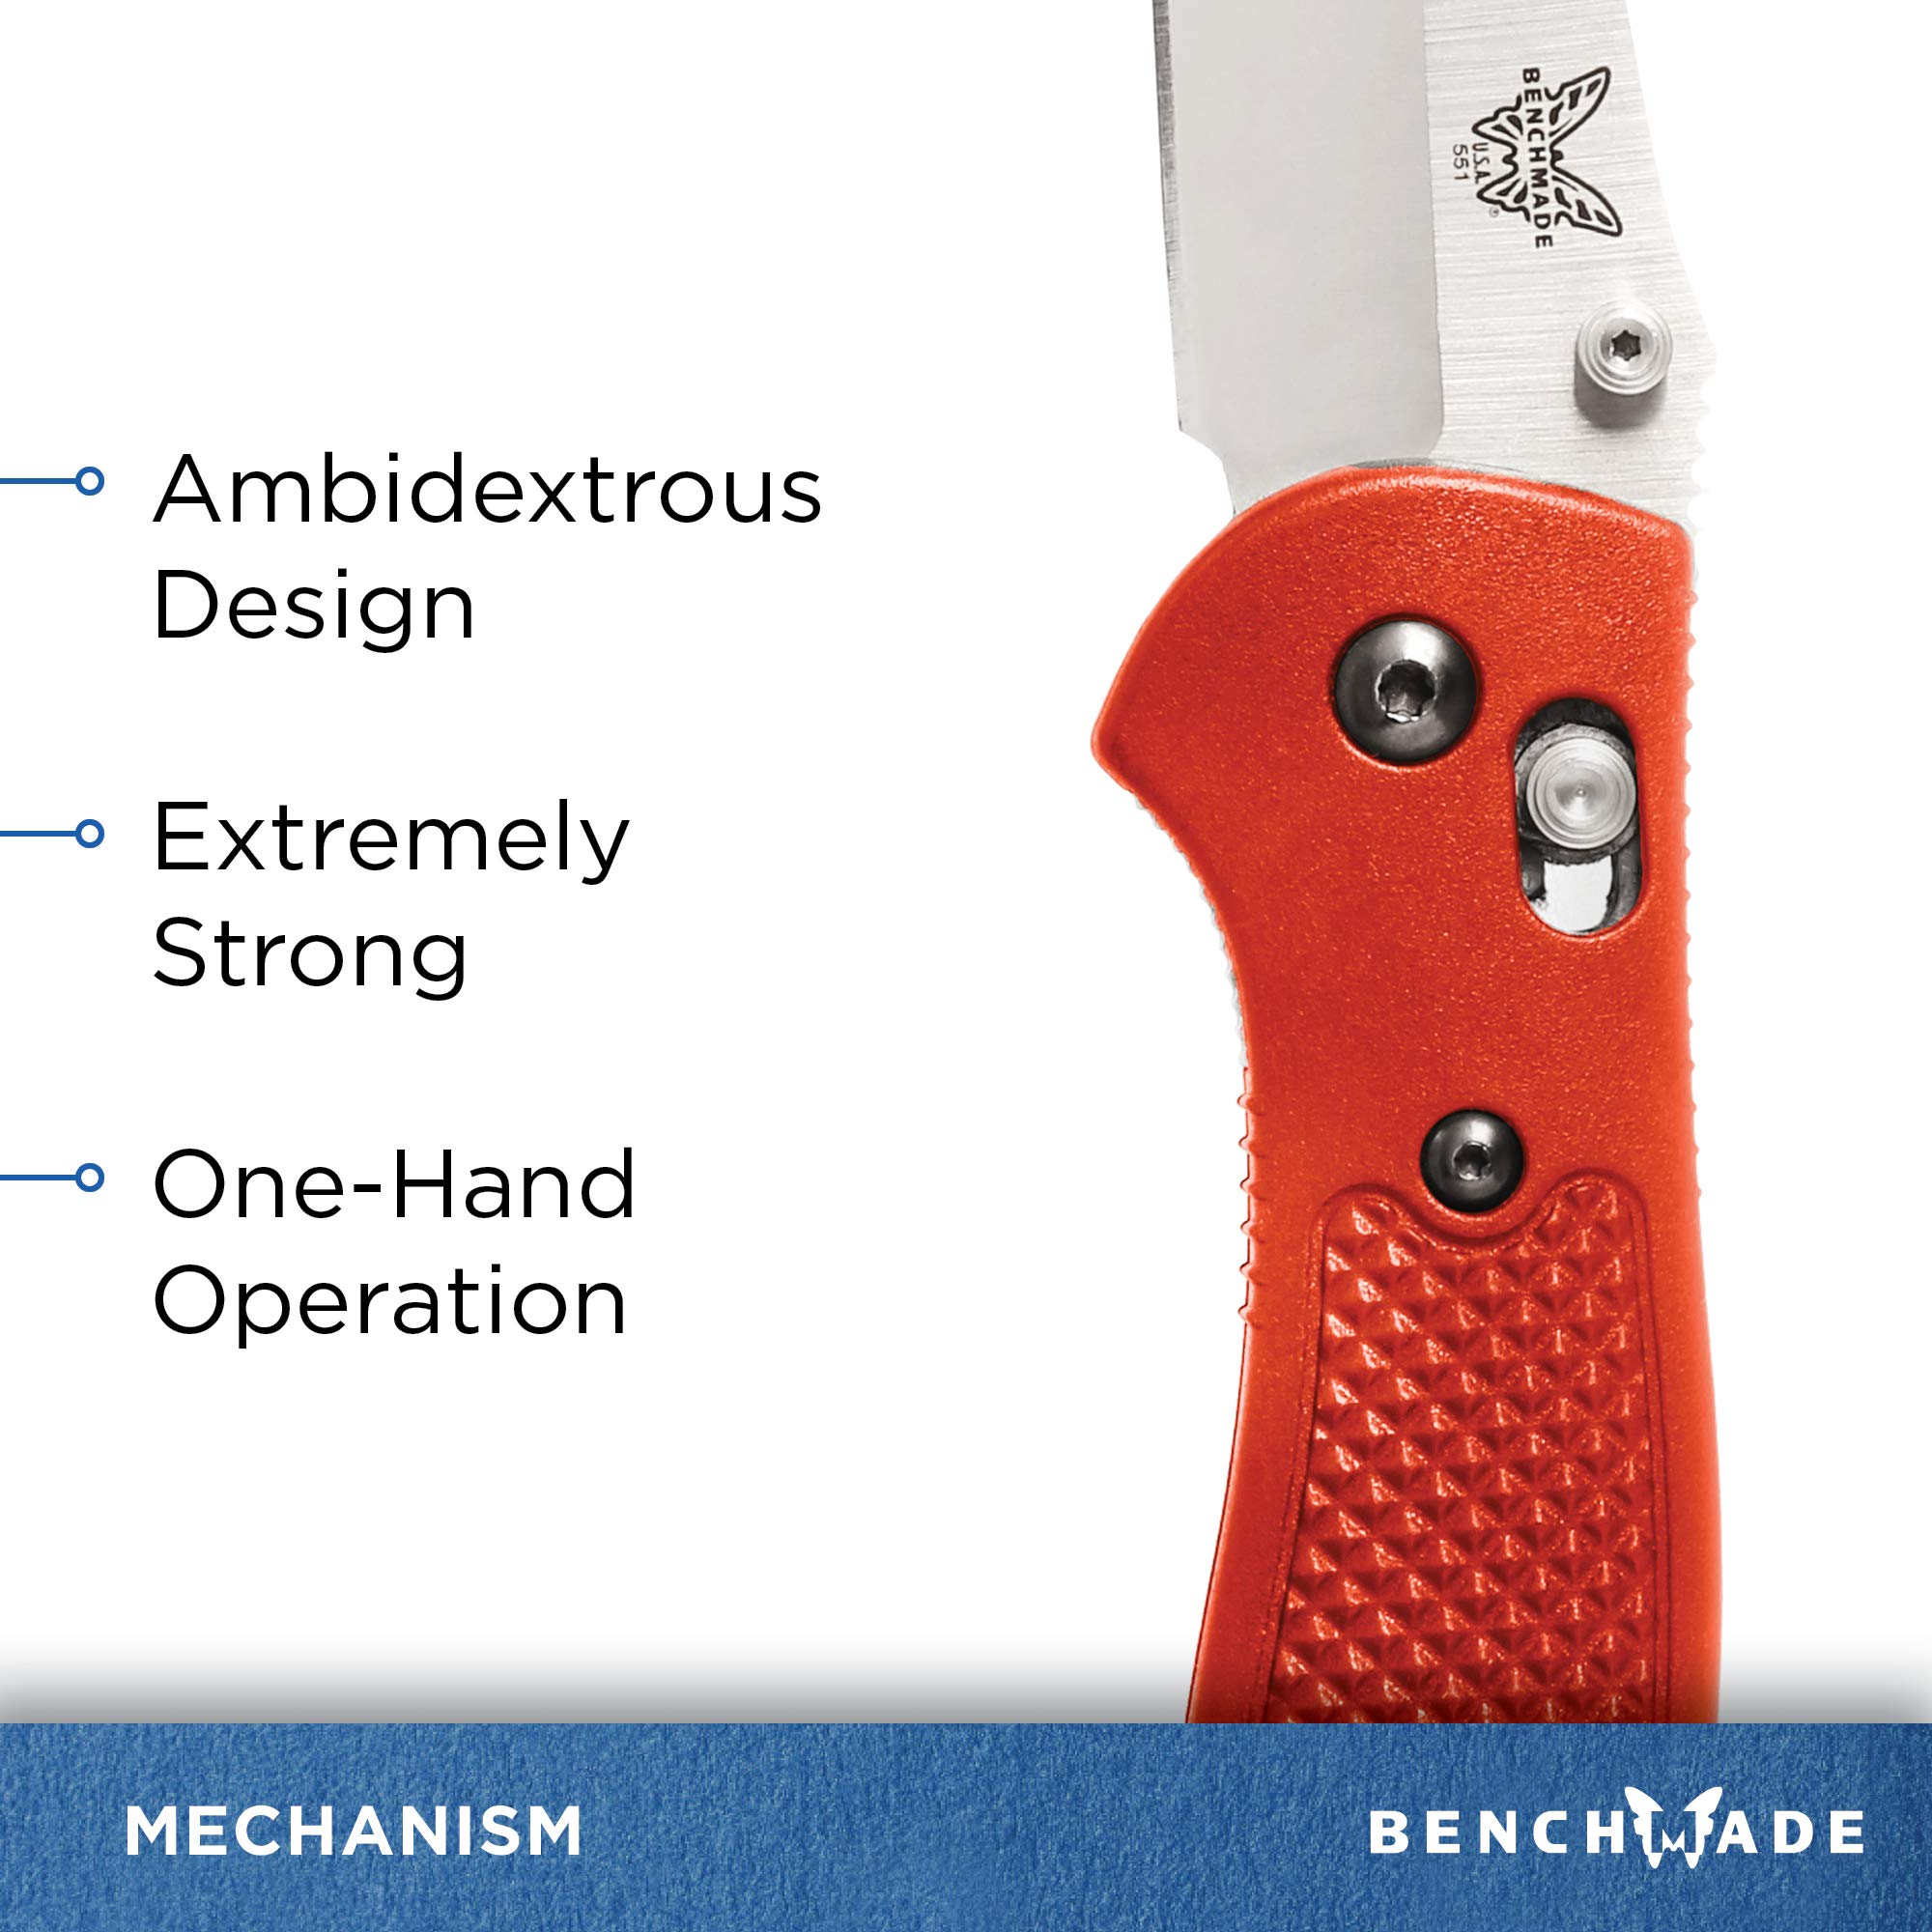 Benchmade - Griptilian 551 Knife with CPM-S30V Steel, Drop-Point Blade, Plain Edge, Satin Finish, Orange Handle by Benchmade (Image #5)